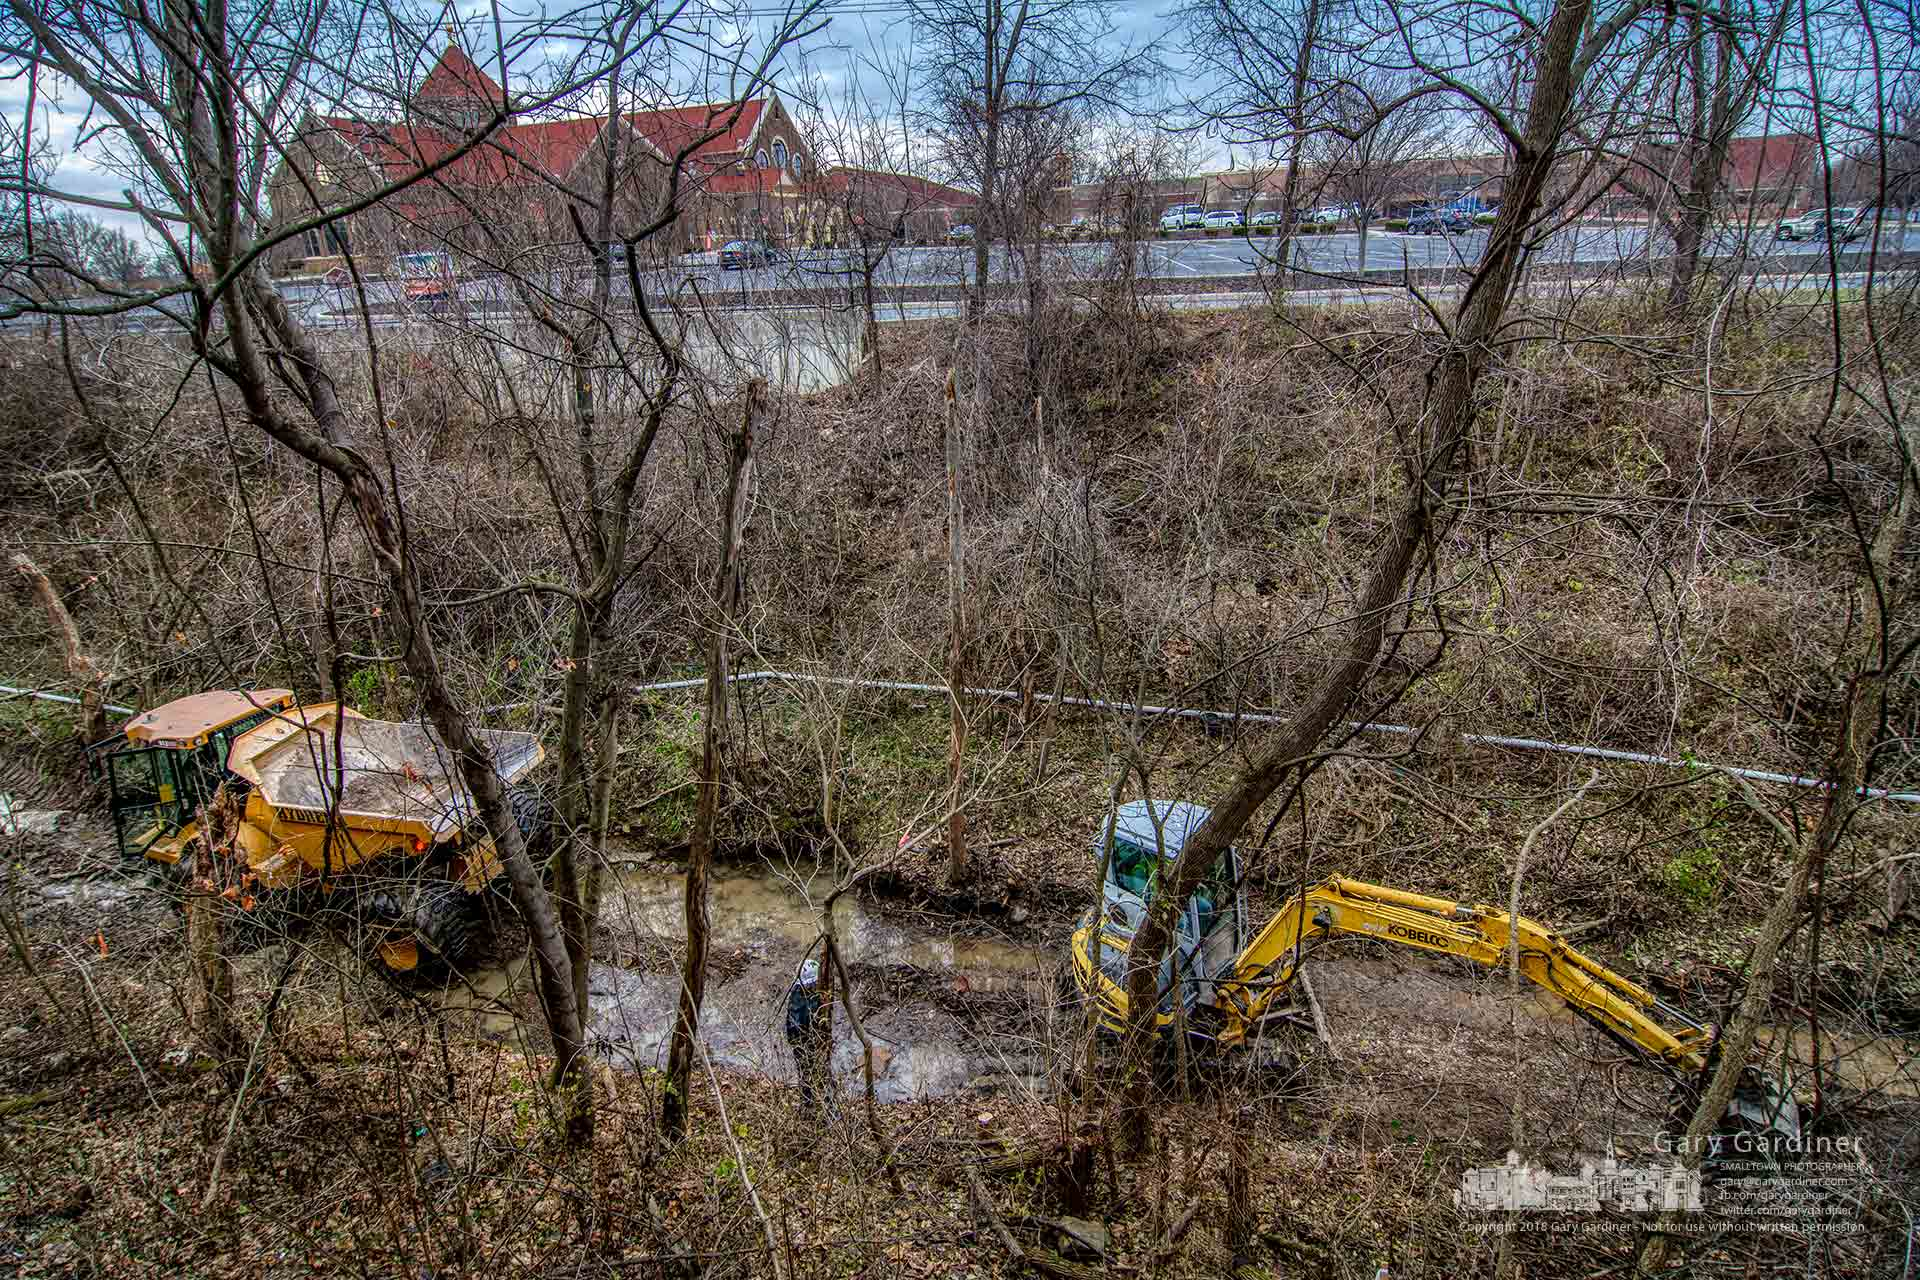 Contractors clear Alkire Run of debris preparing it for the addition heavy stones as part of the creekbed reinforcement and remediation. My Final Photo for Dec. 12, 2018.